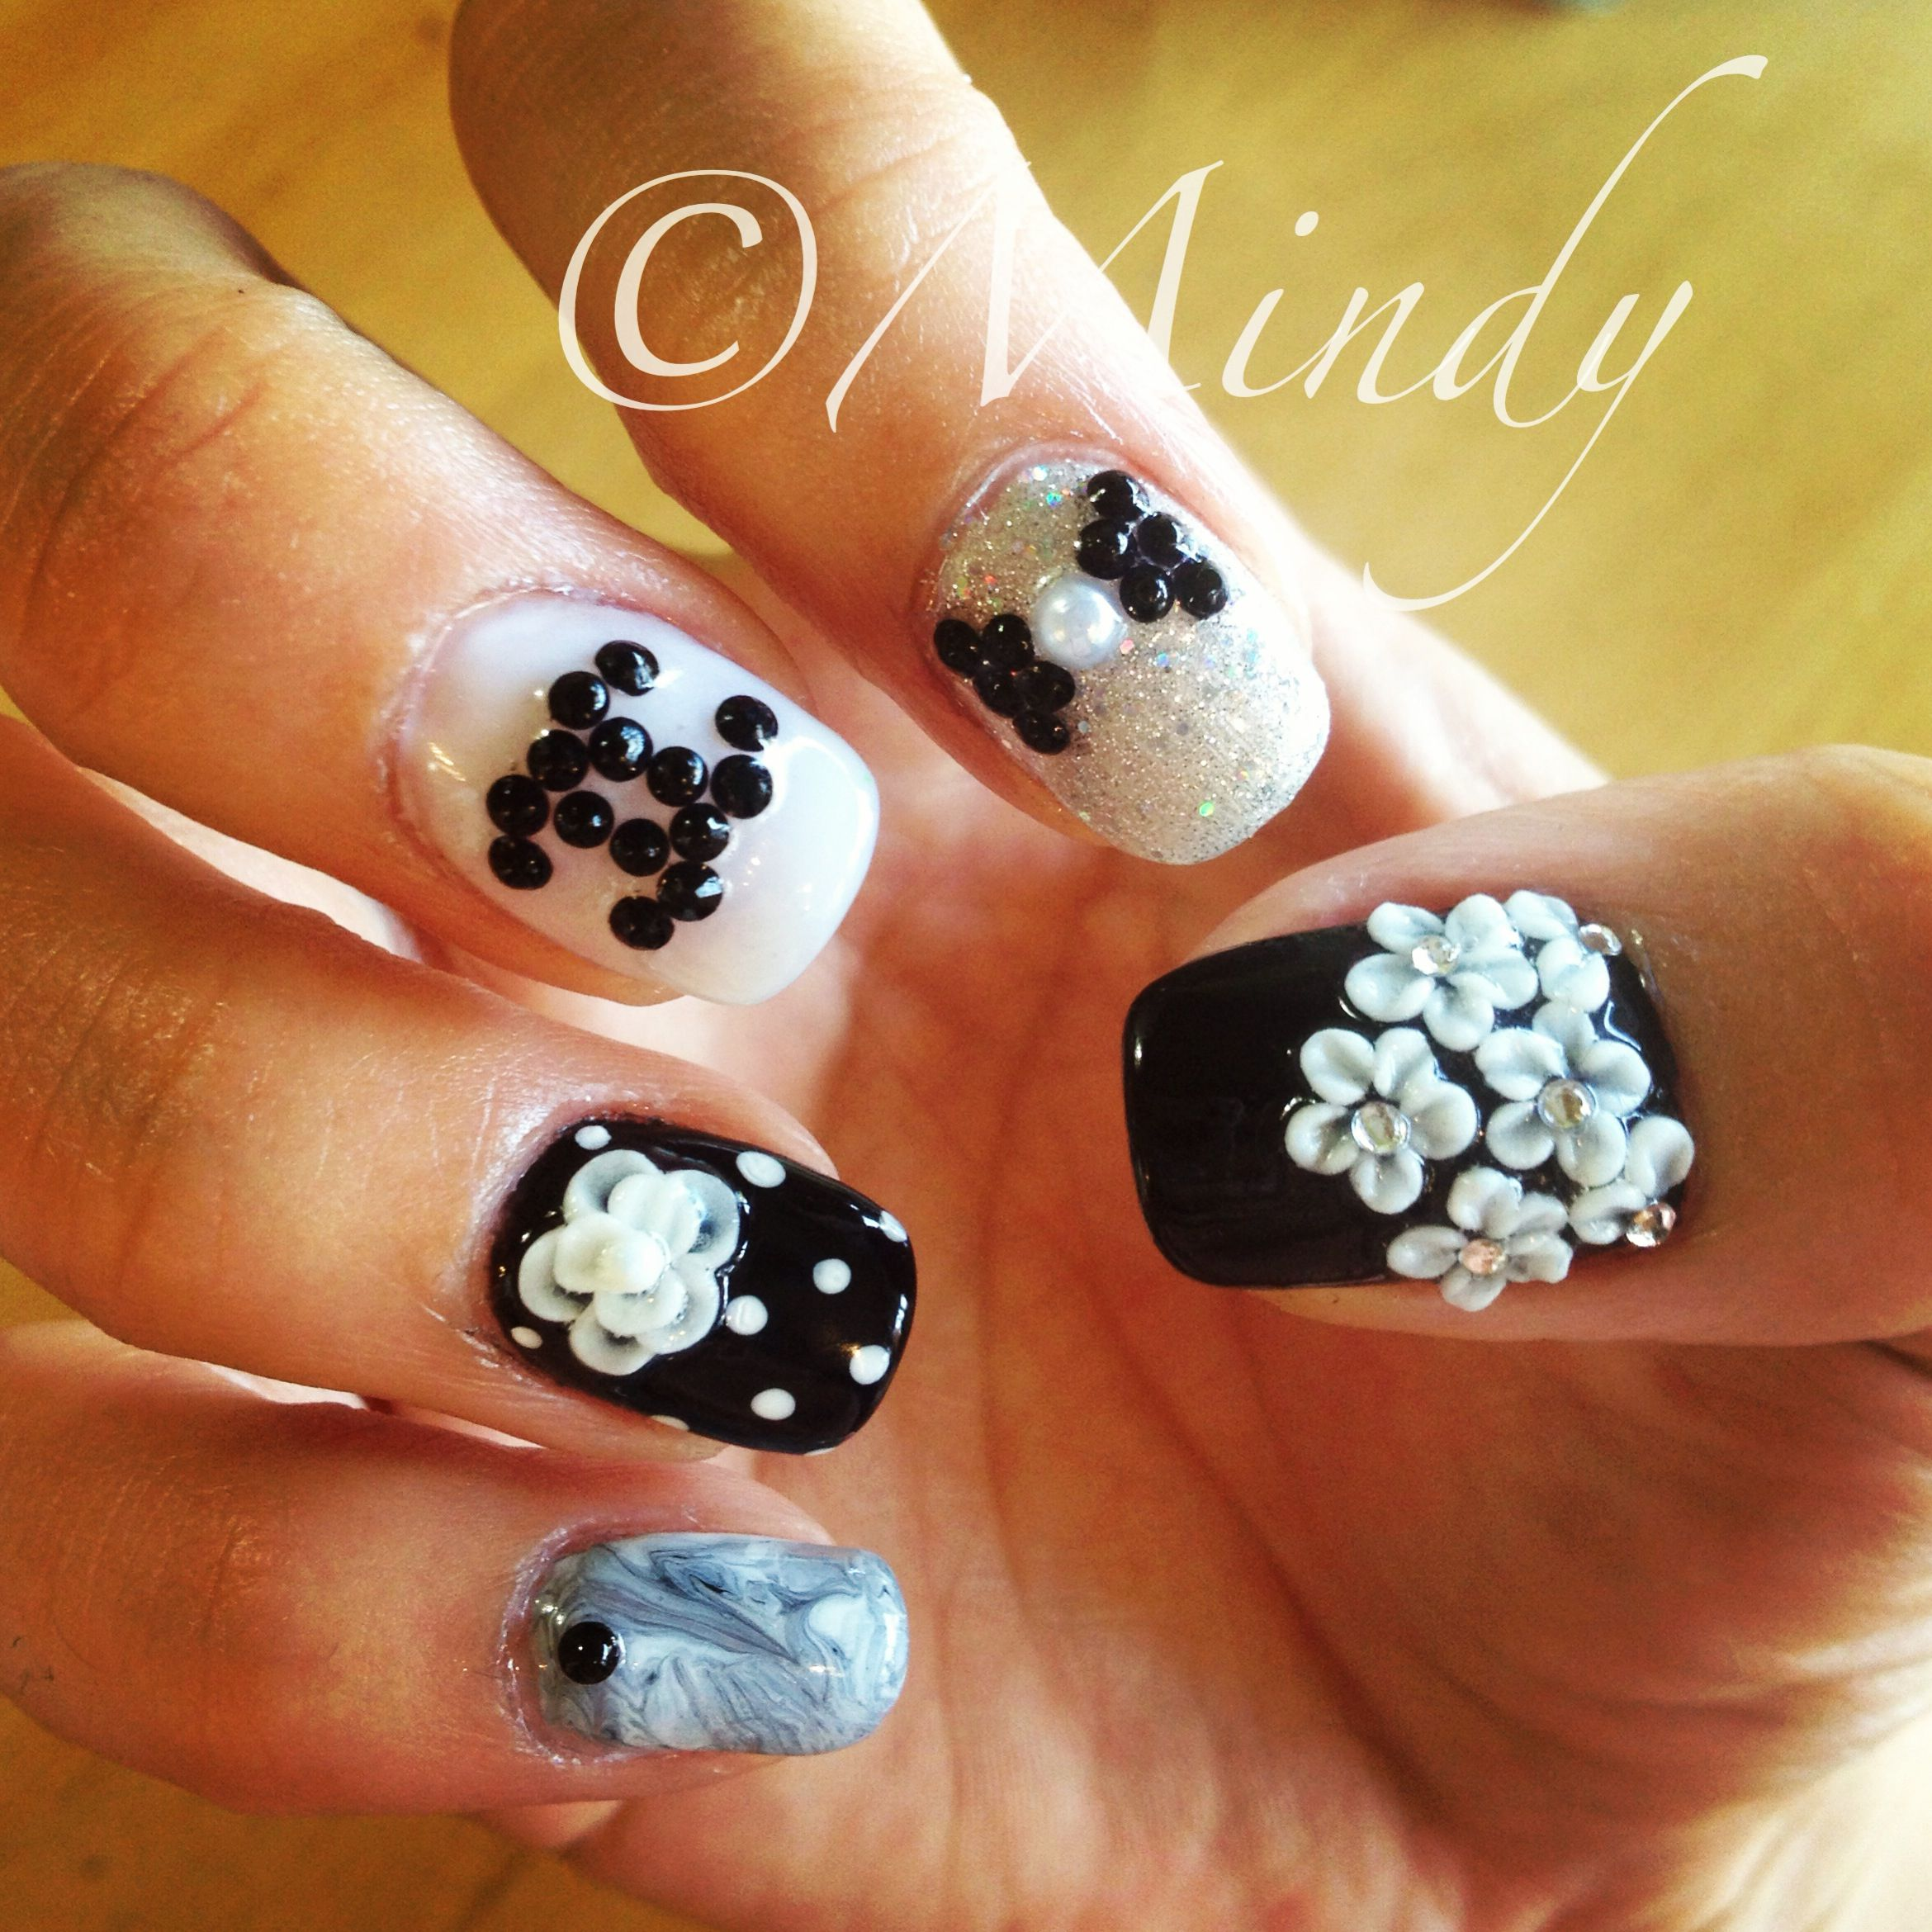 Black And White Nails Art With Chanel Logo White Nail Art Nail Art Black And White Nail Art